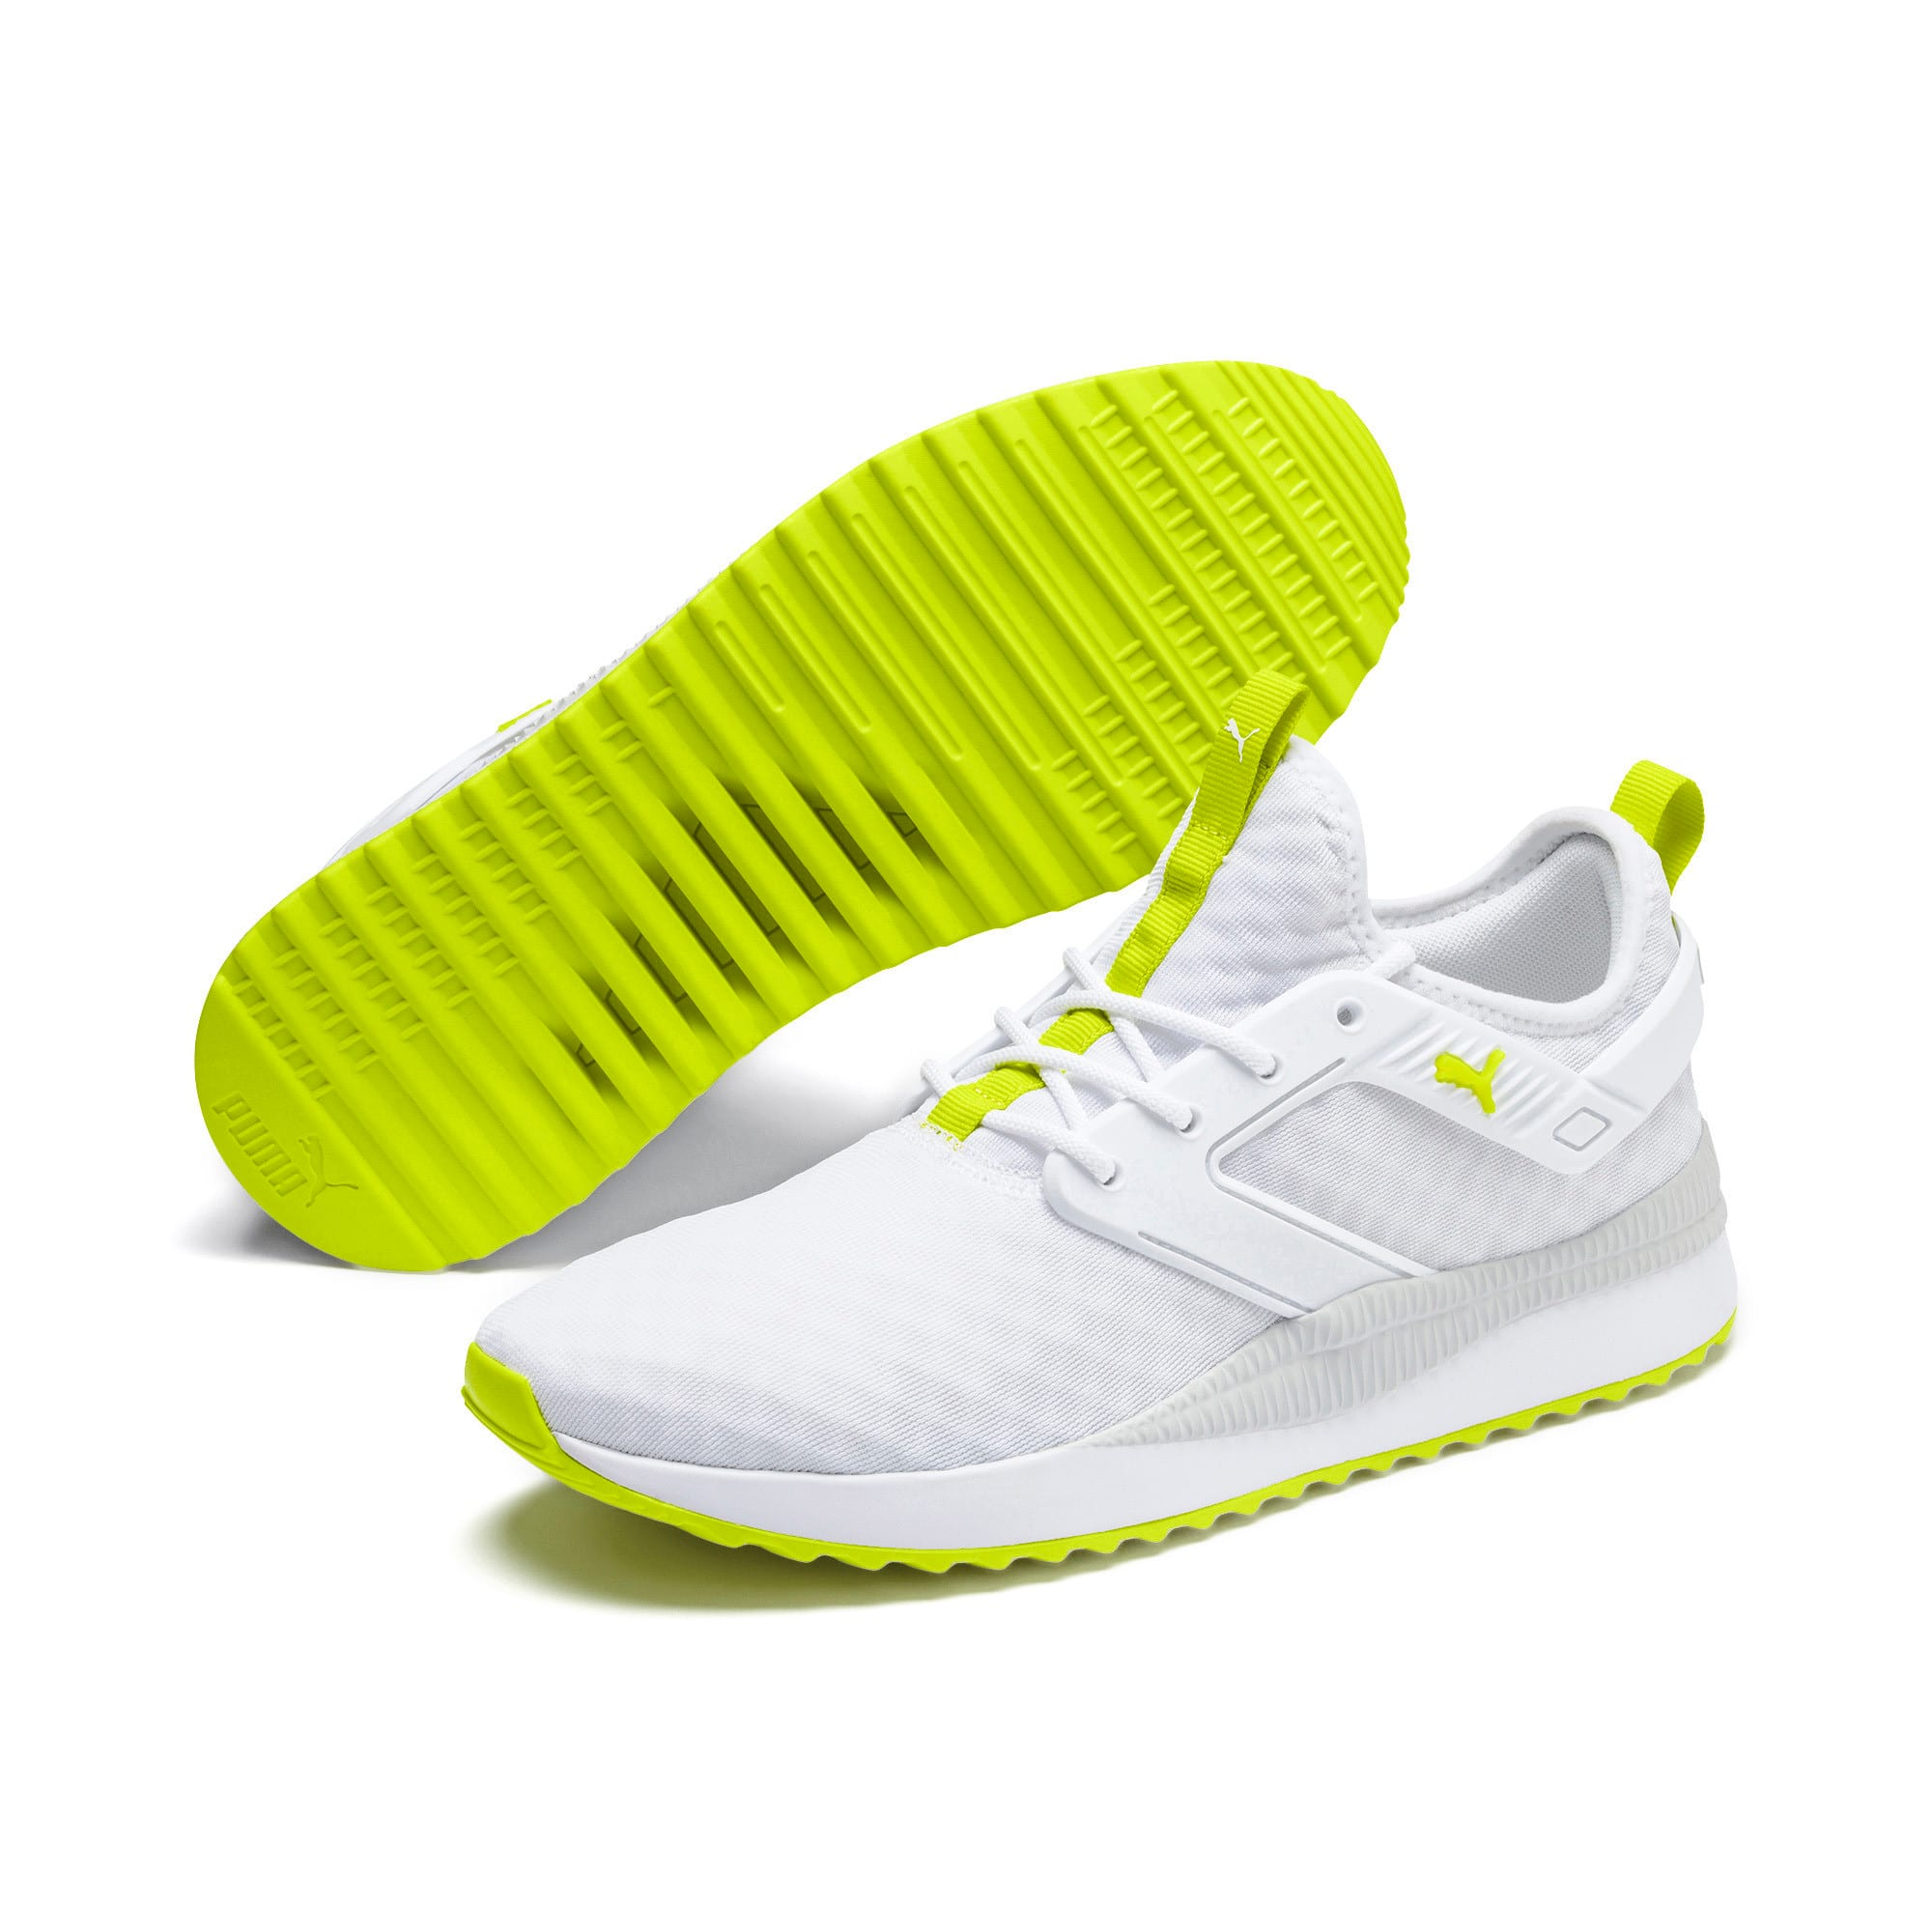 Thumbnail 3 of Pacer Next Excel Laufschuhe, Puma White-Nrgy Yellow, medium